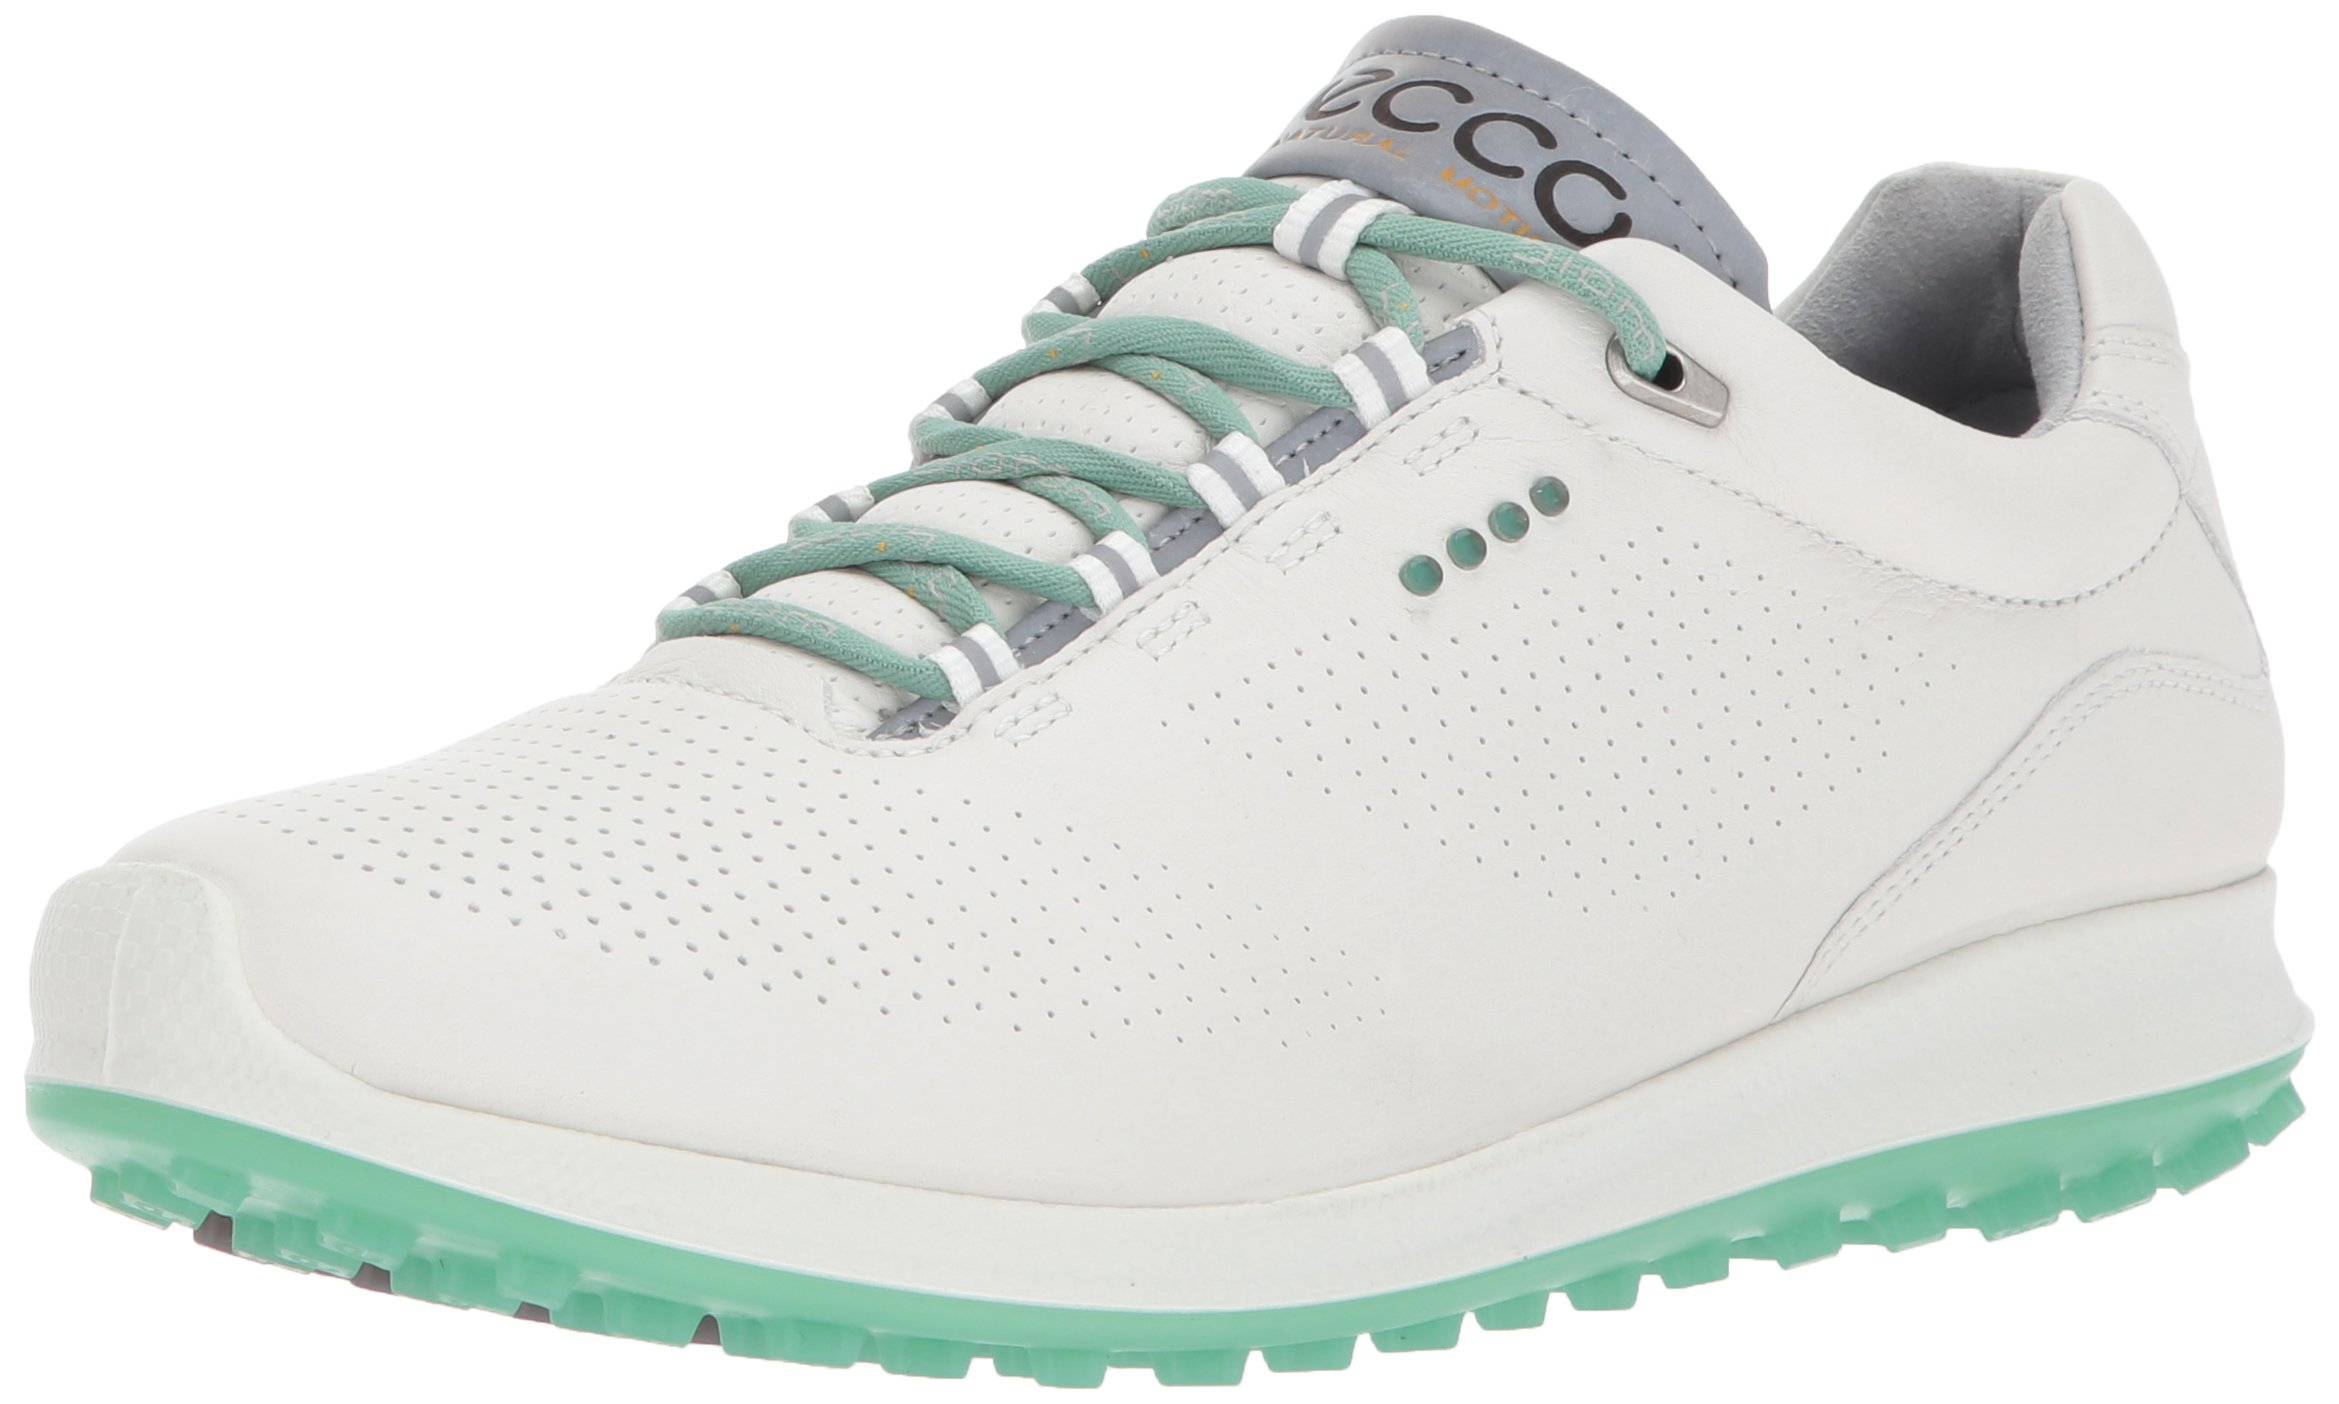 ECCO Women's Biom Hybrid 2 Perforated Golf Shoe, White/Granite Green Yak Leather, 9 M US by ECCO